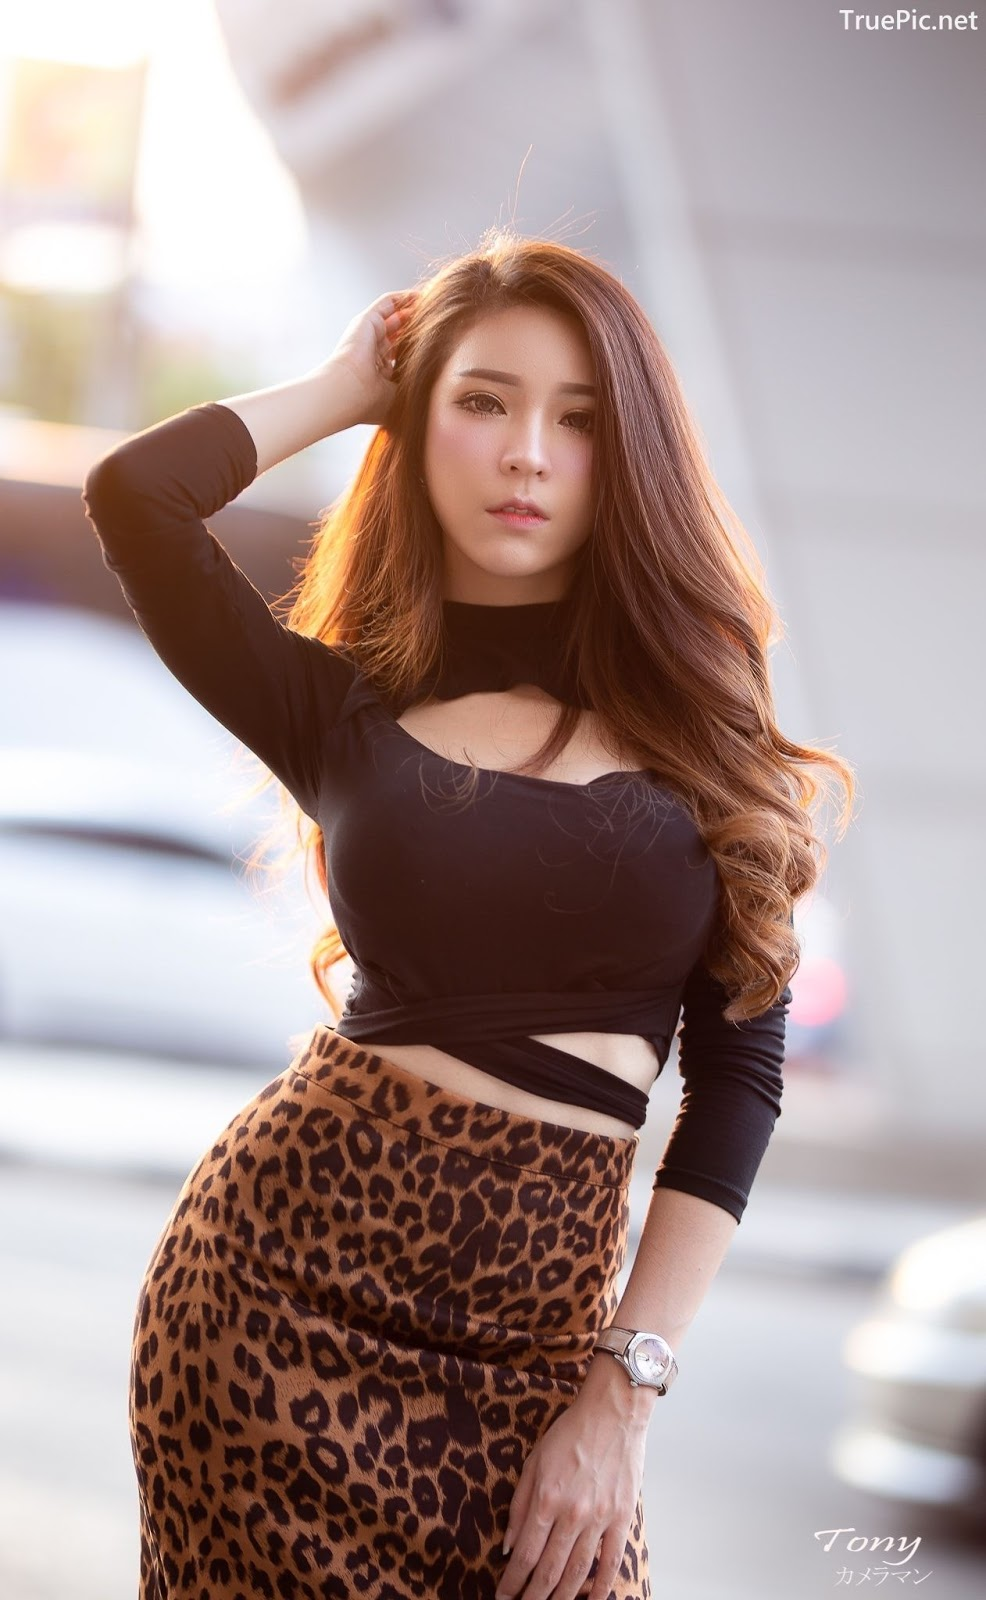 Image-Thailand-Hot-Model-Janet-Kanokwan-Saesim-Sexy-In-Black-And-Leopard-Fabric-TruePic.net- Picture-5